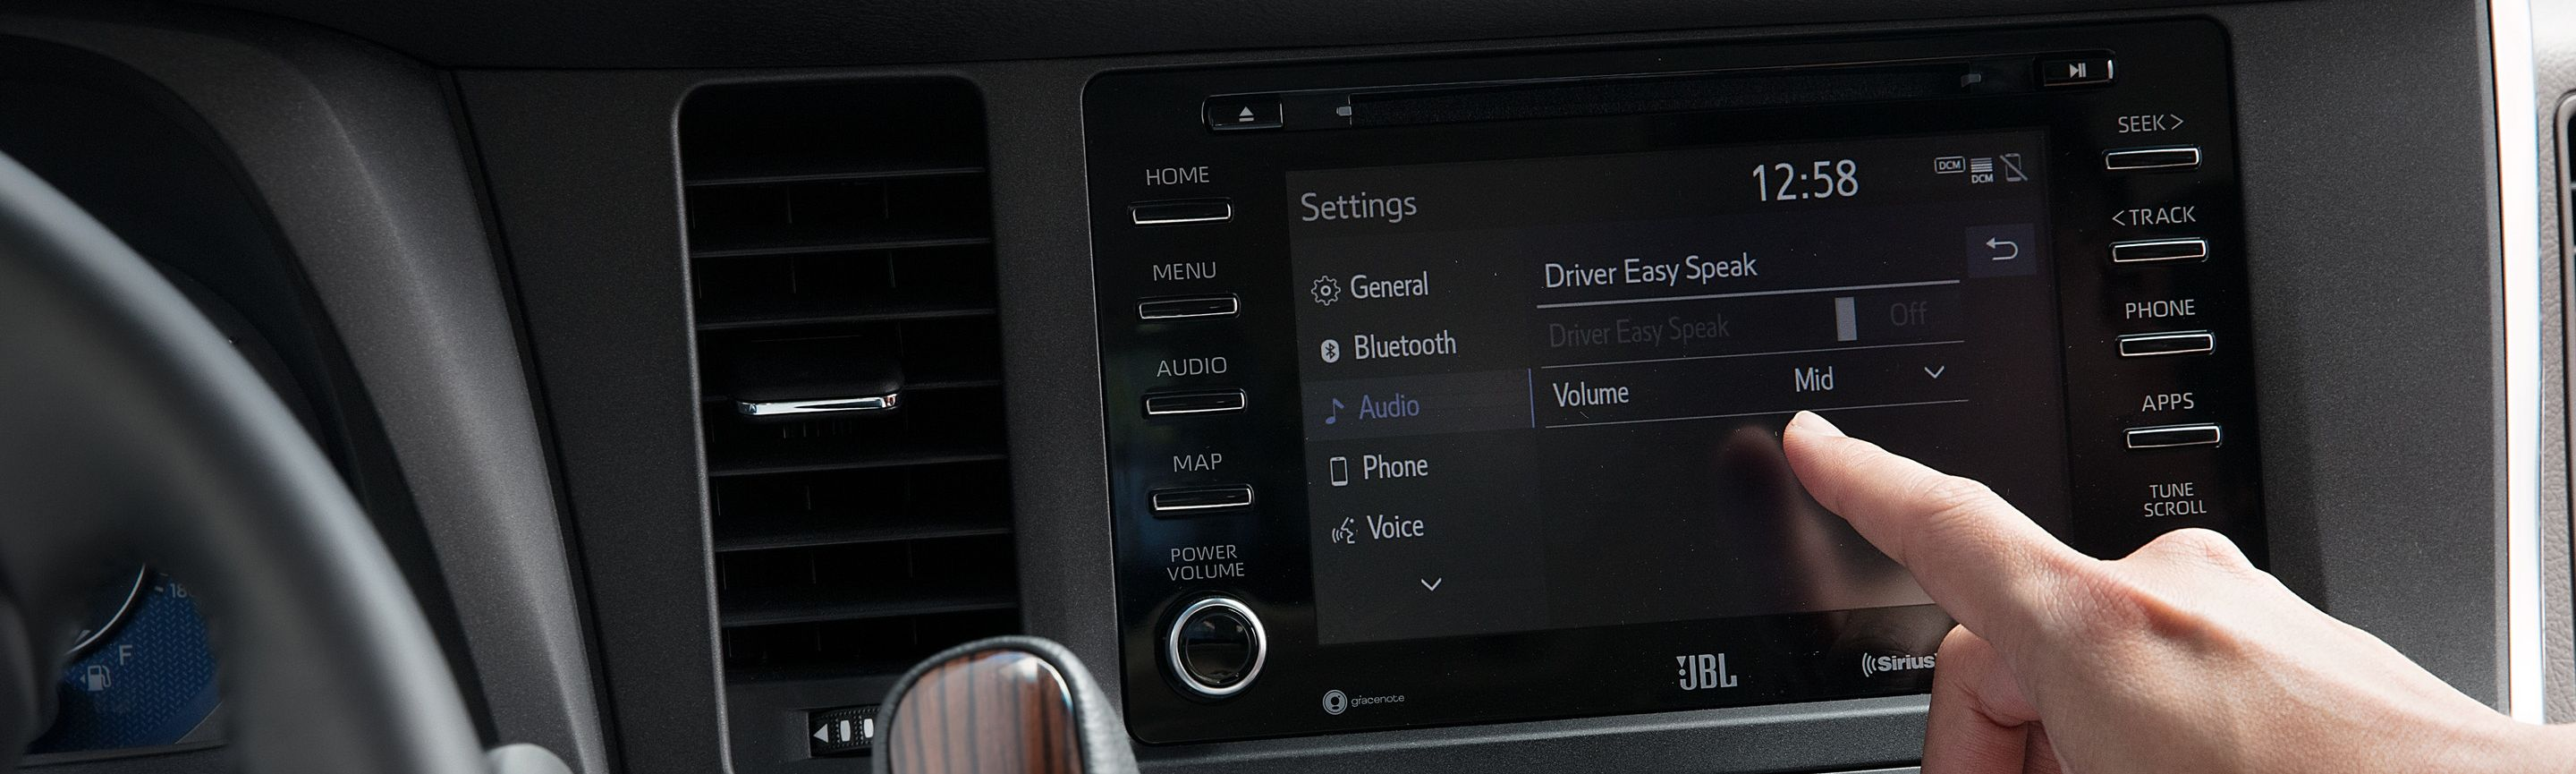 2020 Toyota Sienna Center Console